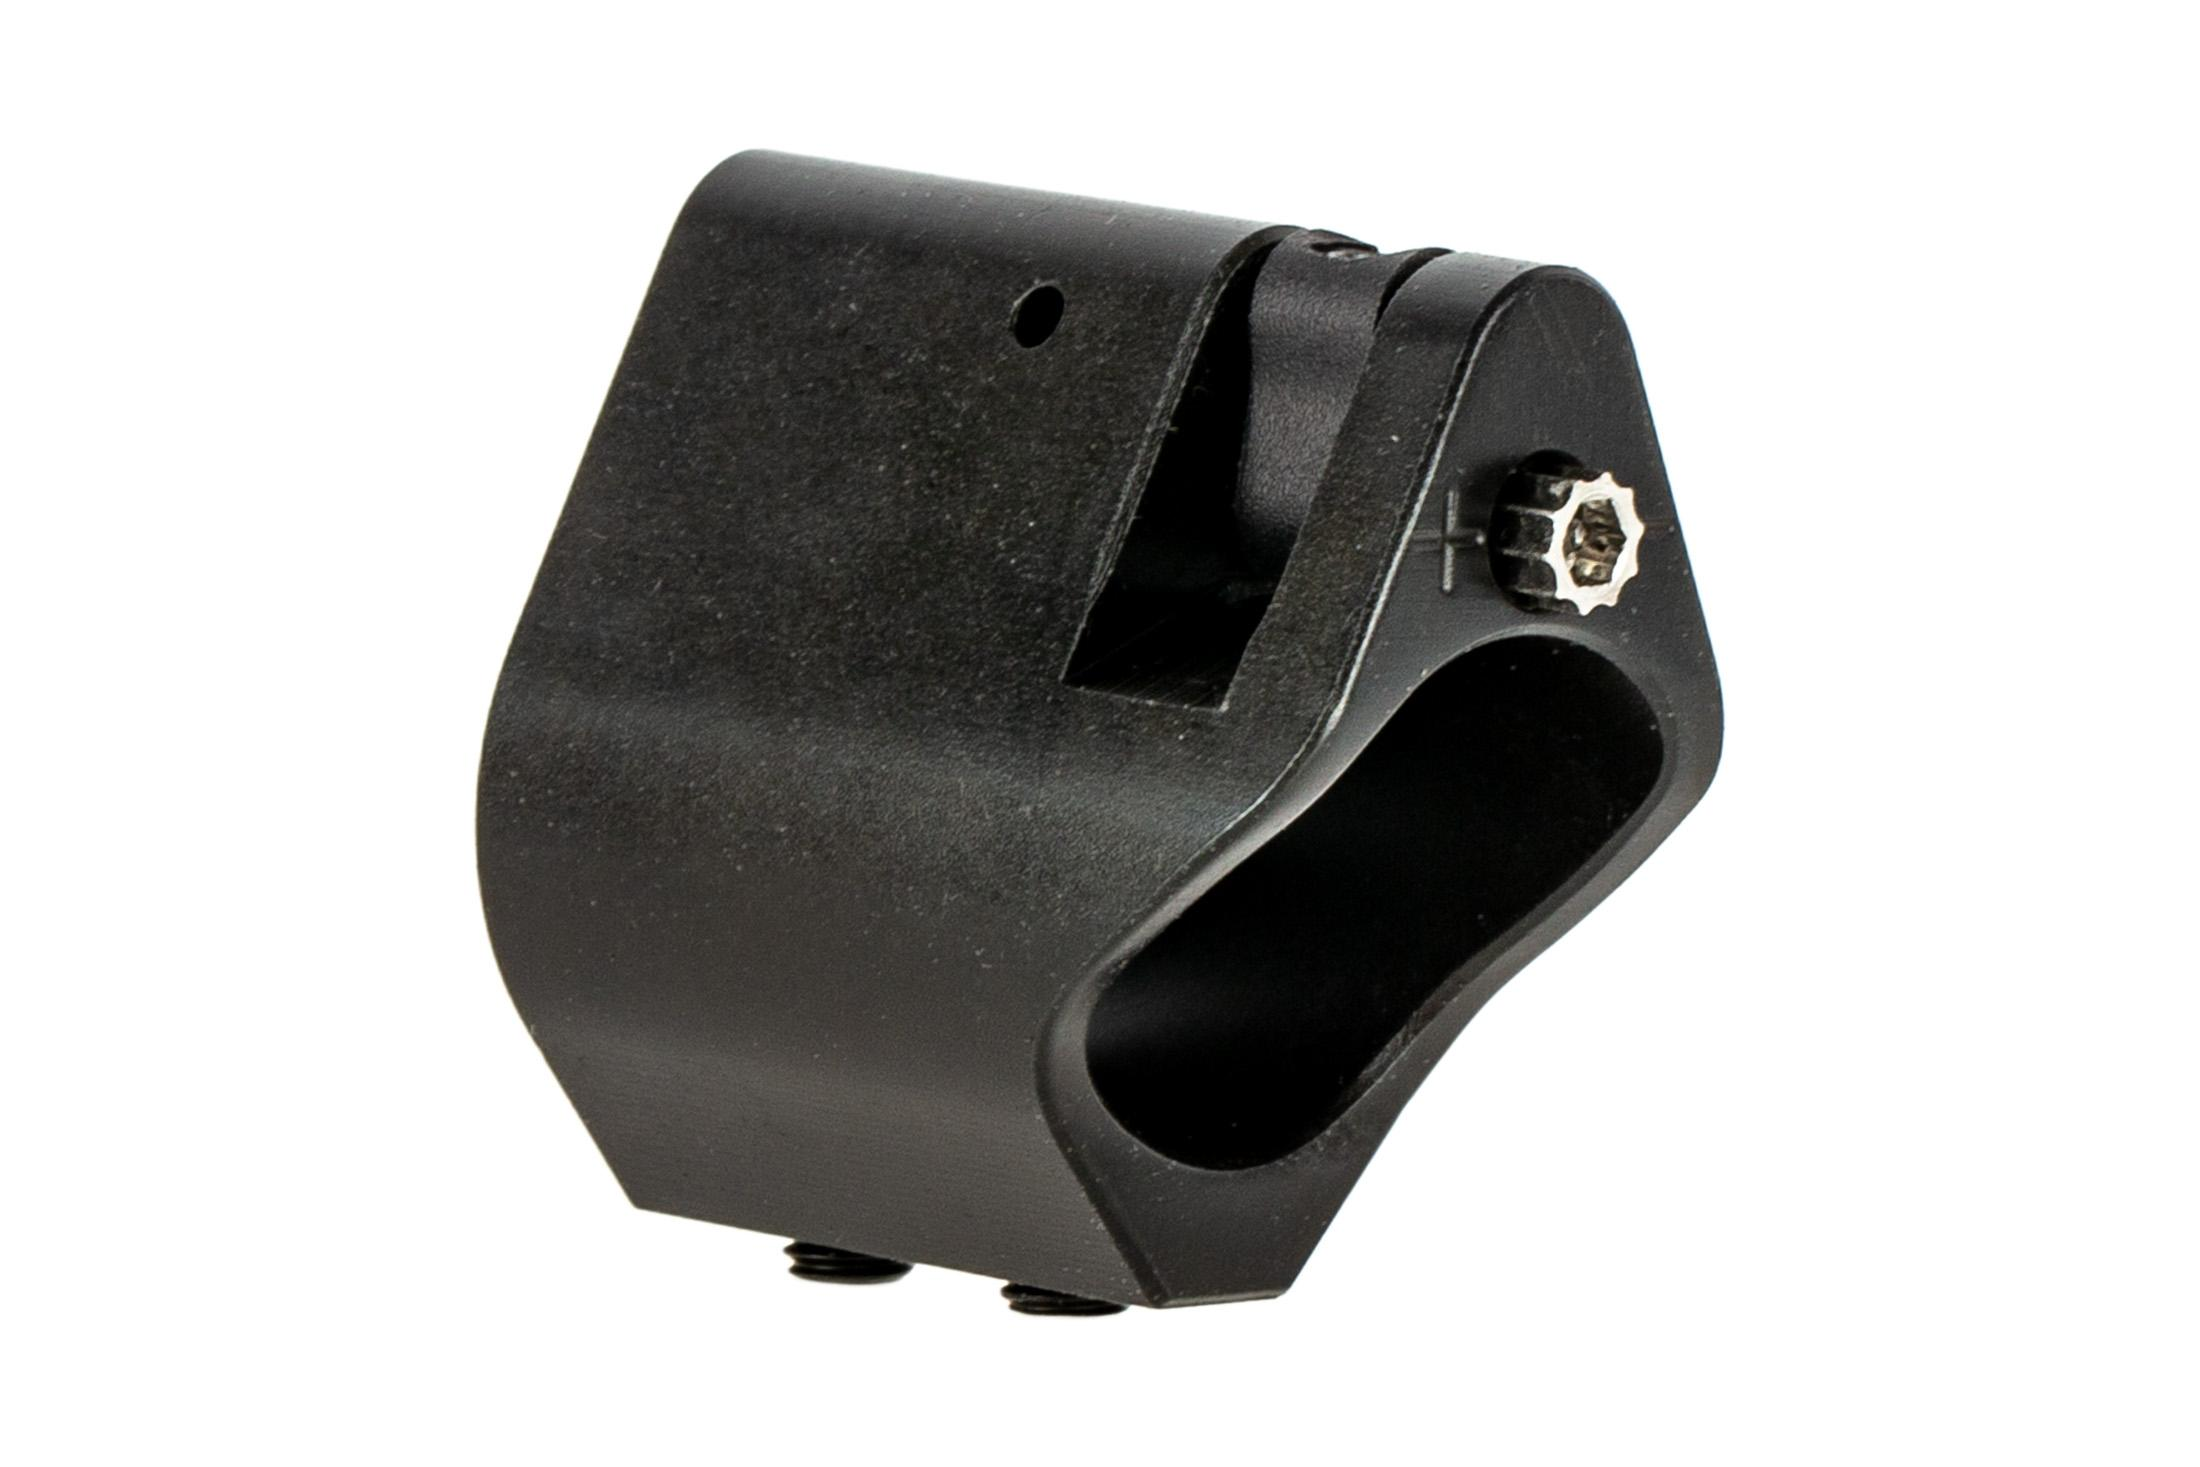 Seekins Precision SELECT Adjustable low profile gas block for .750 barrels features a nitride finish